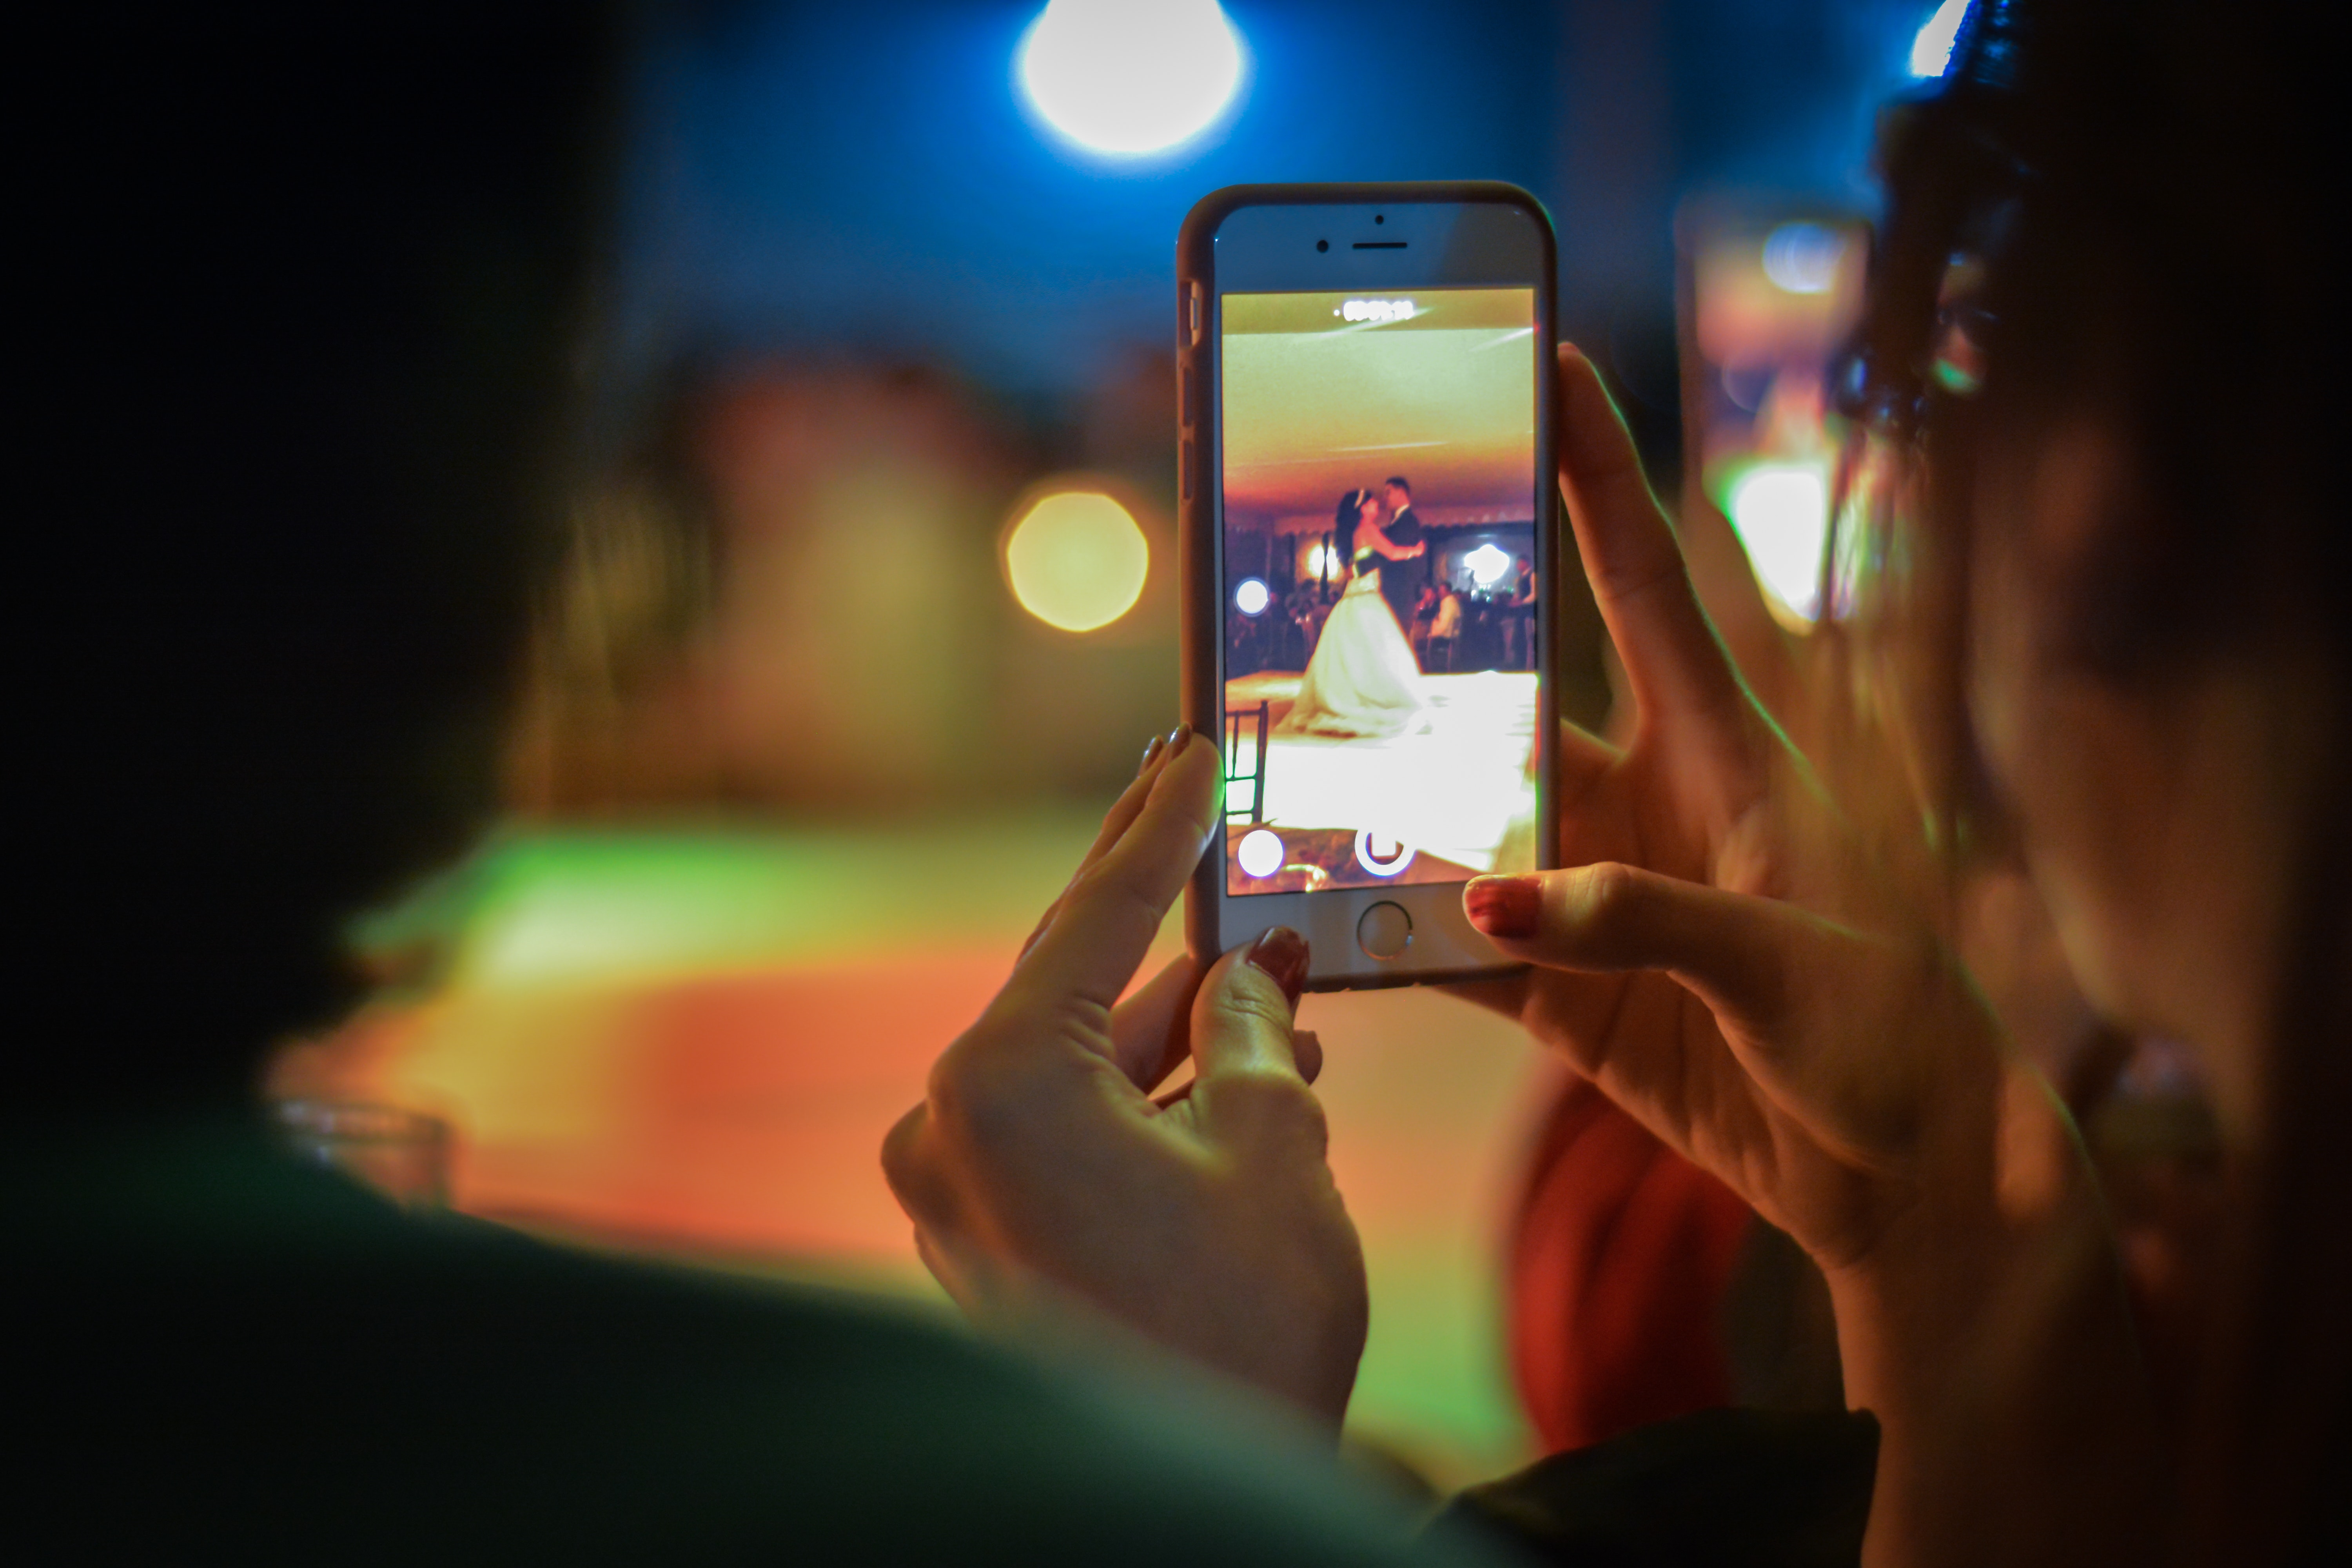 Close-up of woman using mobile phone at night photo